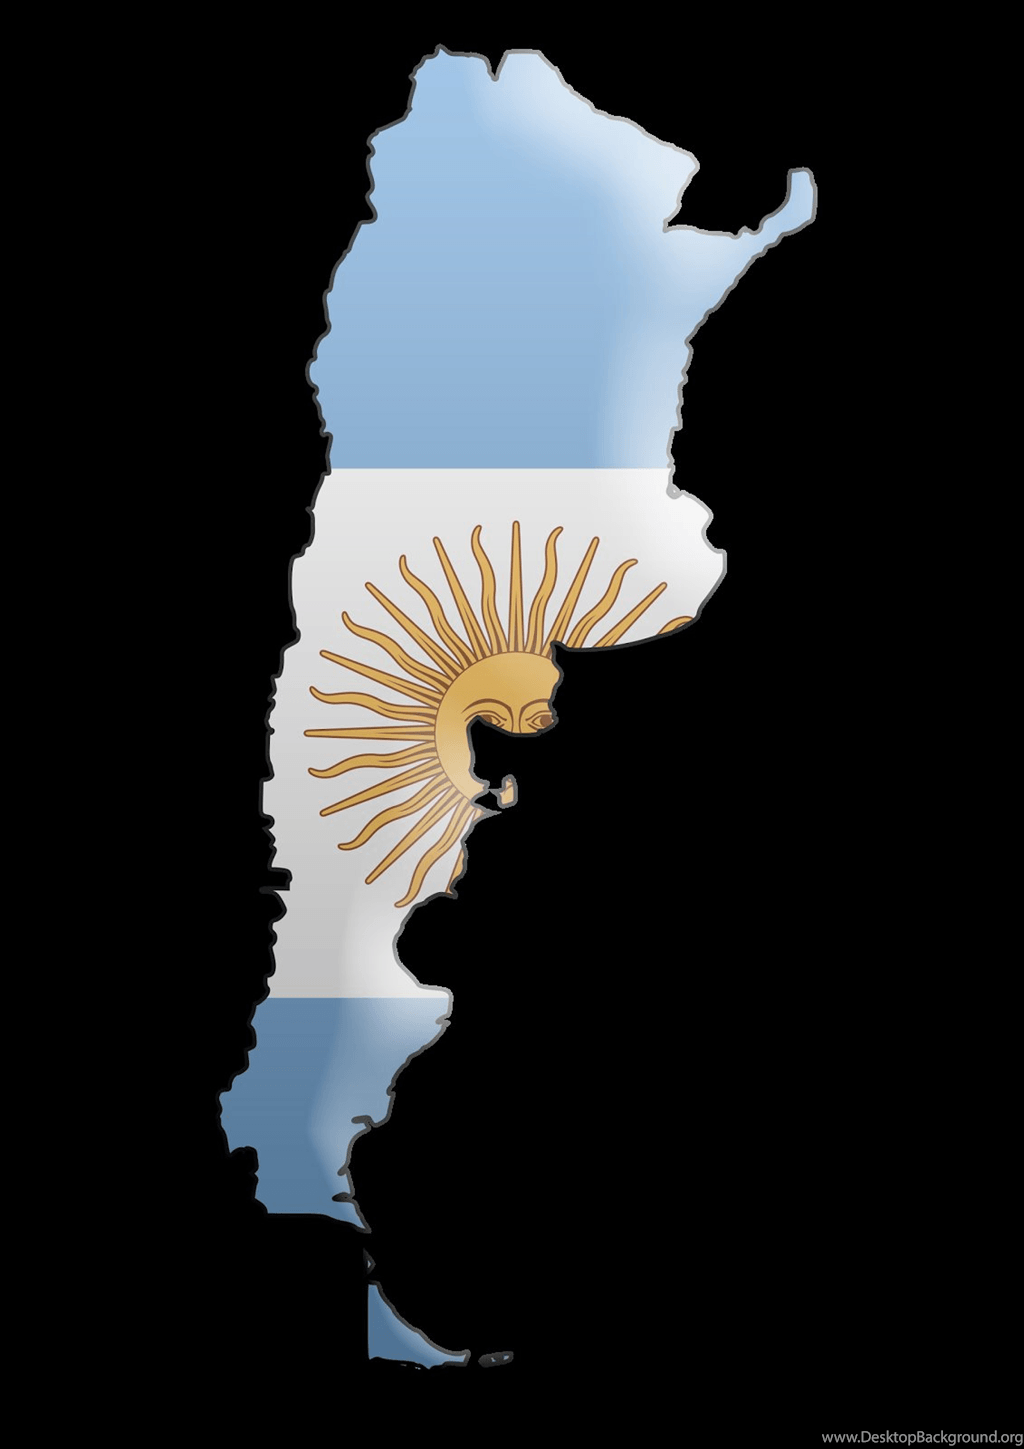 My Life Like: Wallpapers Flag Of Argentina Desktop Background